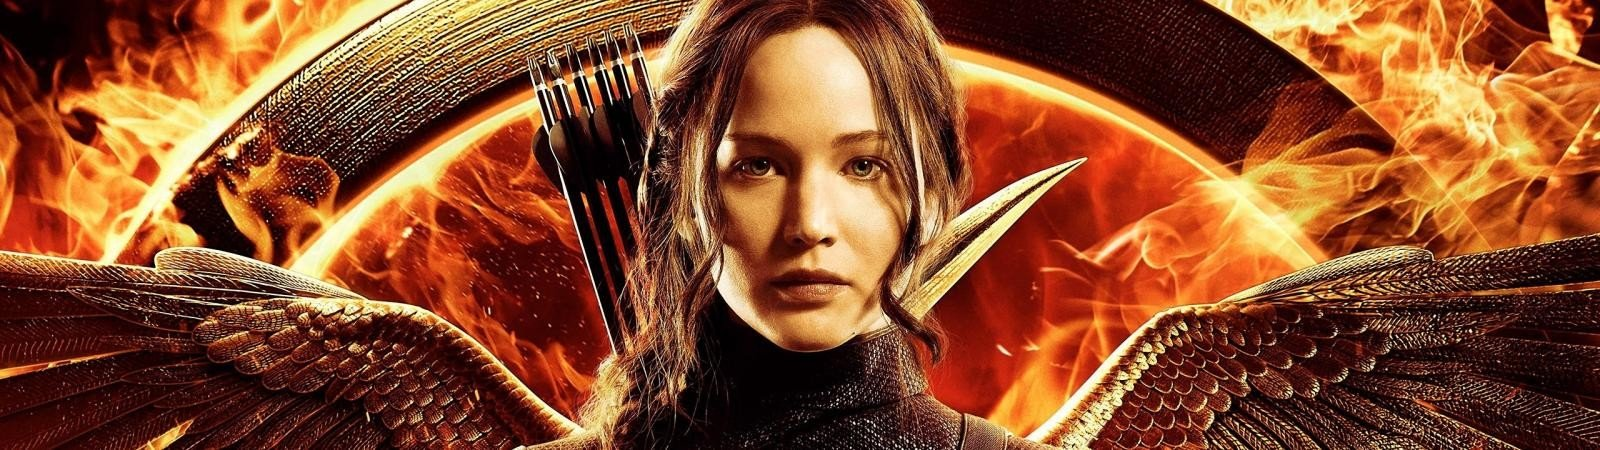 Photo du film : Hunger Games : la révolte, 2e partie